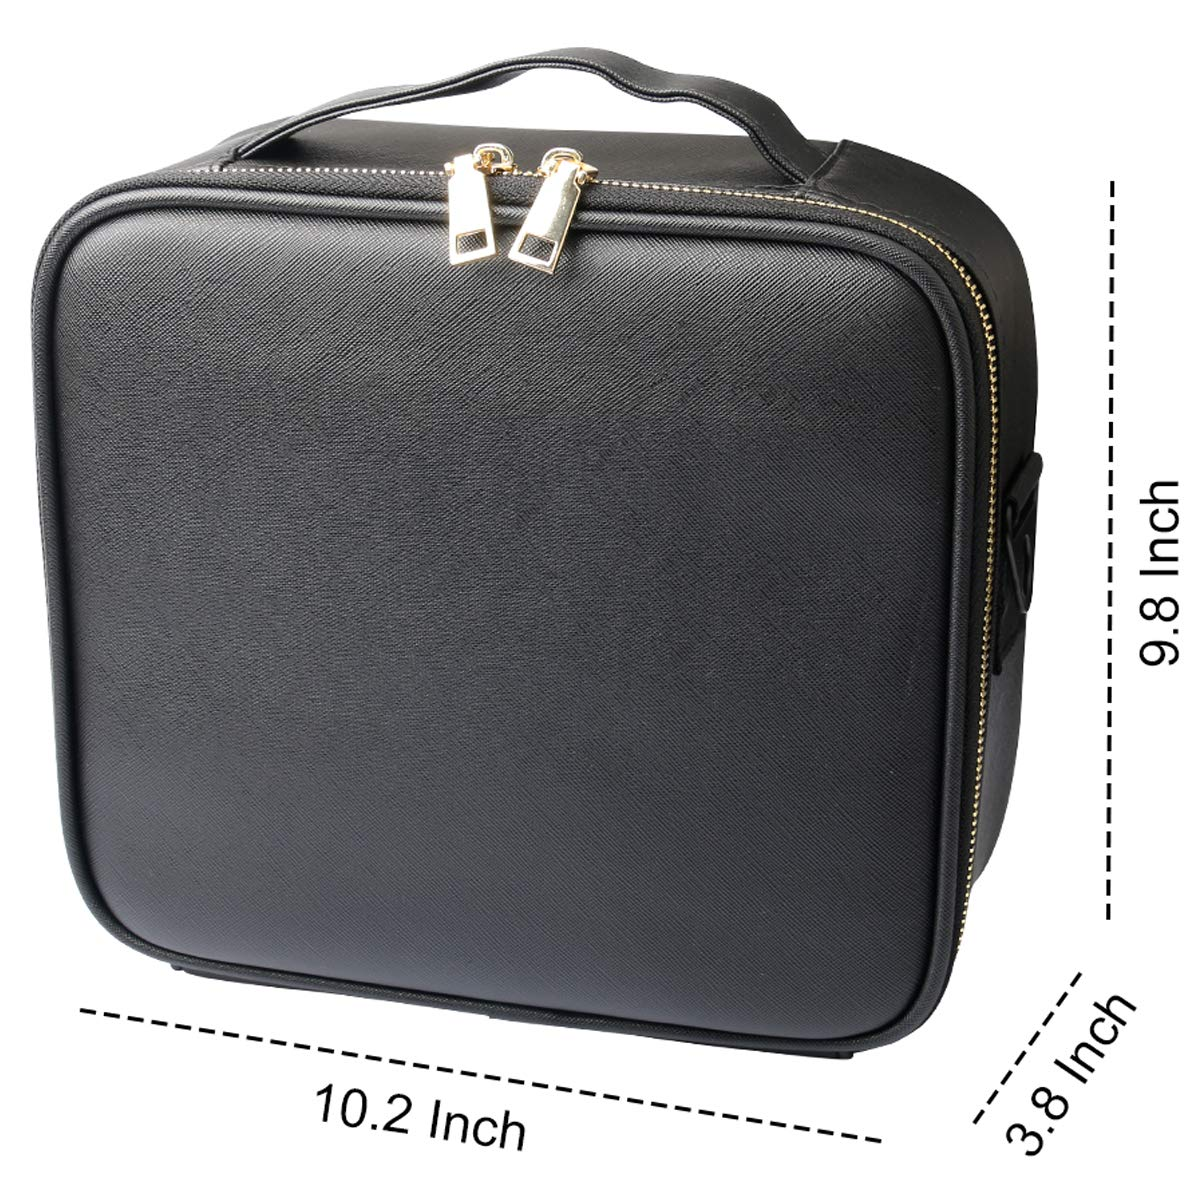 PU Leather Travel Makeup Case, Portable Organizer Makeup Train Case Cosmetic Bag